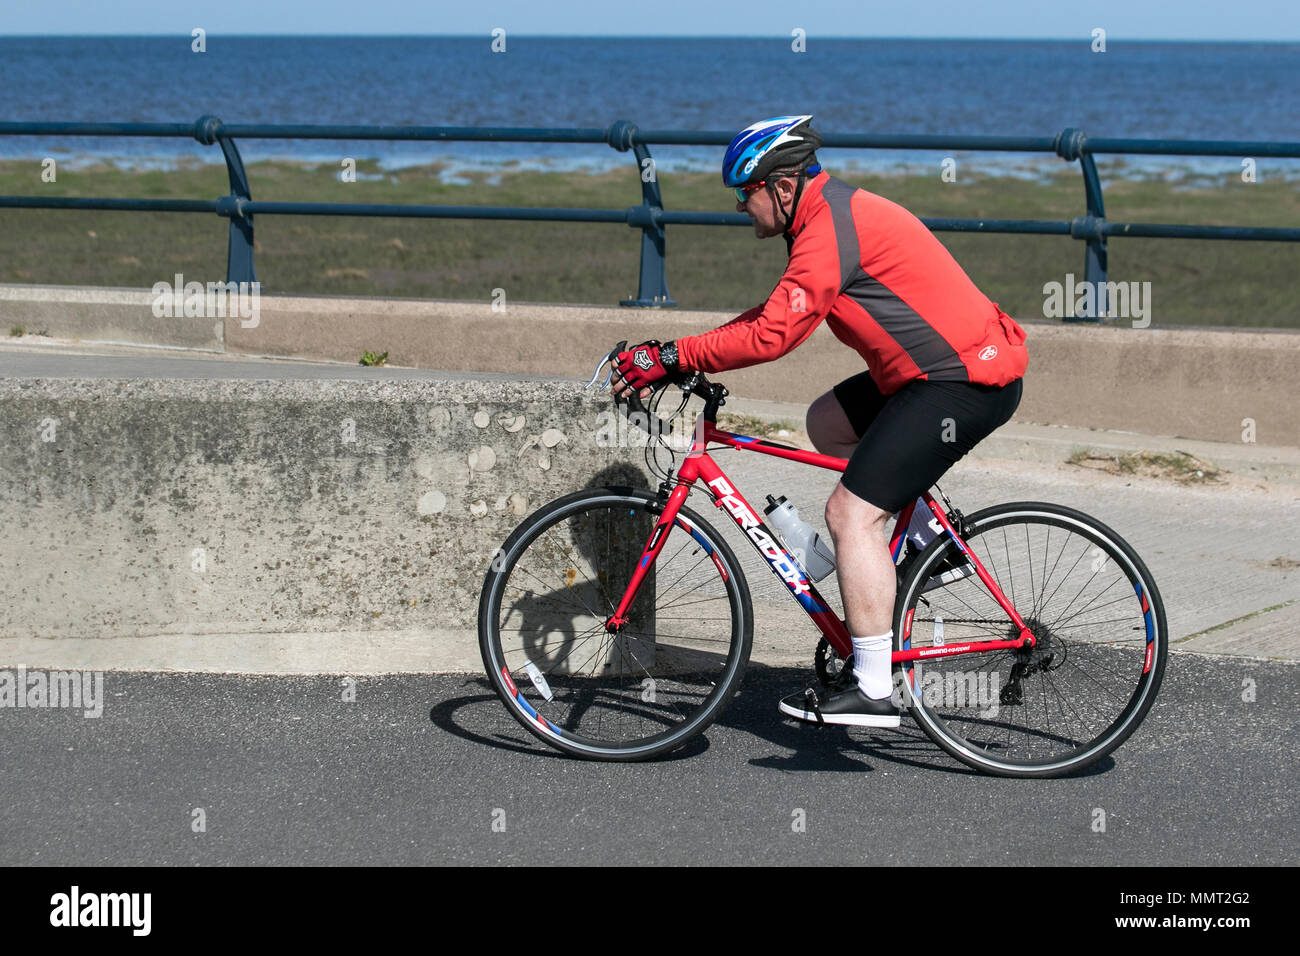 Southport, Merseyside, UK 13/05/2018. UK Weather. Bright colours on a bright sunny day at the coast, as temperatures in the North West are expected to rise.  Residents of the resort take light morning exercise on the seafront promenade at the start of the day. Credit: MediaWorldImages/AlamyLiveNews Stock Photo